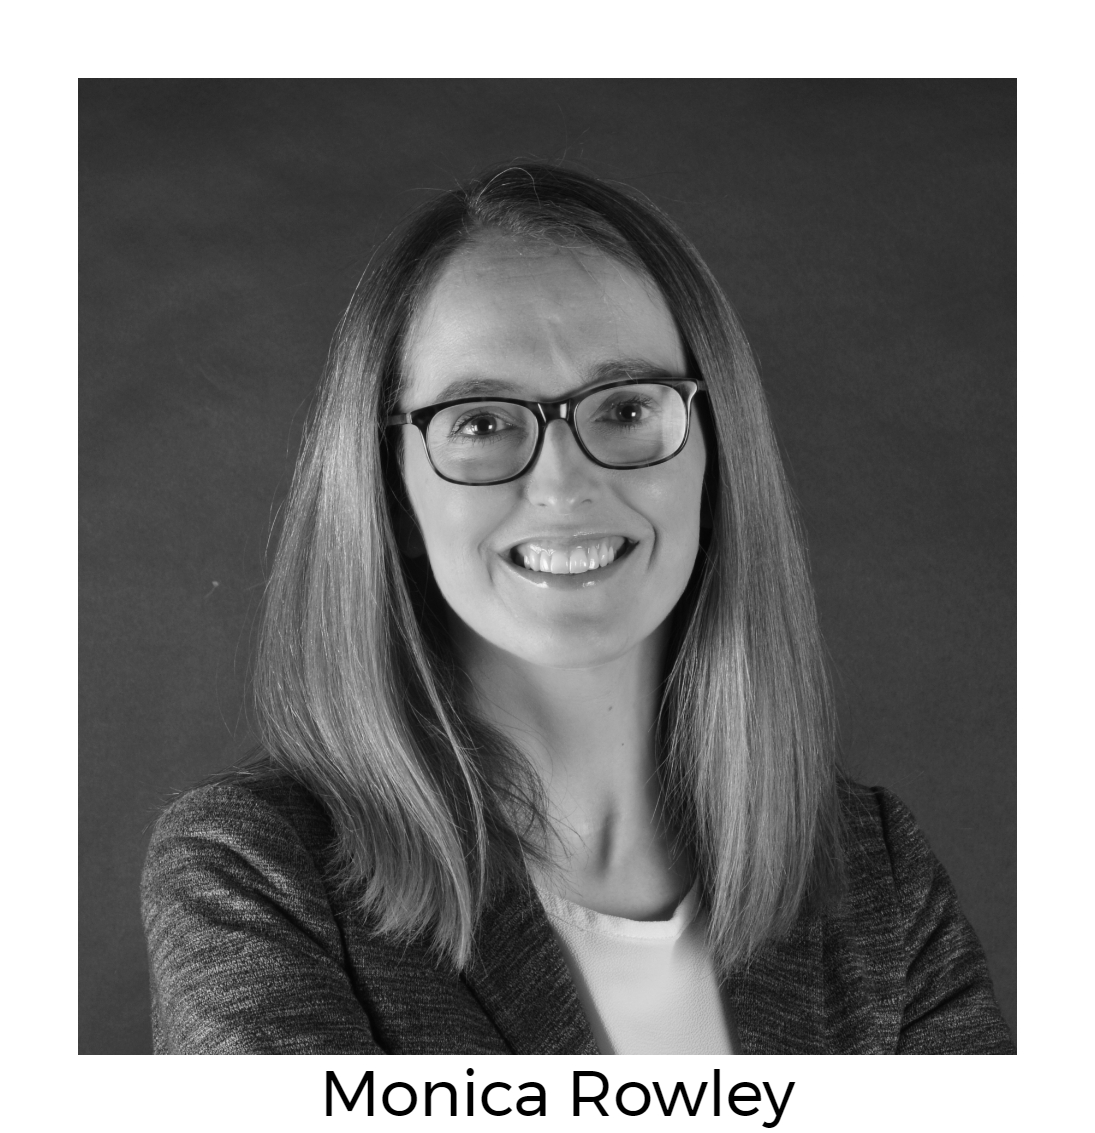 Monica Rowley